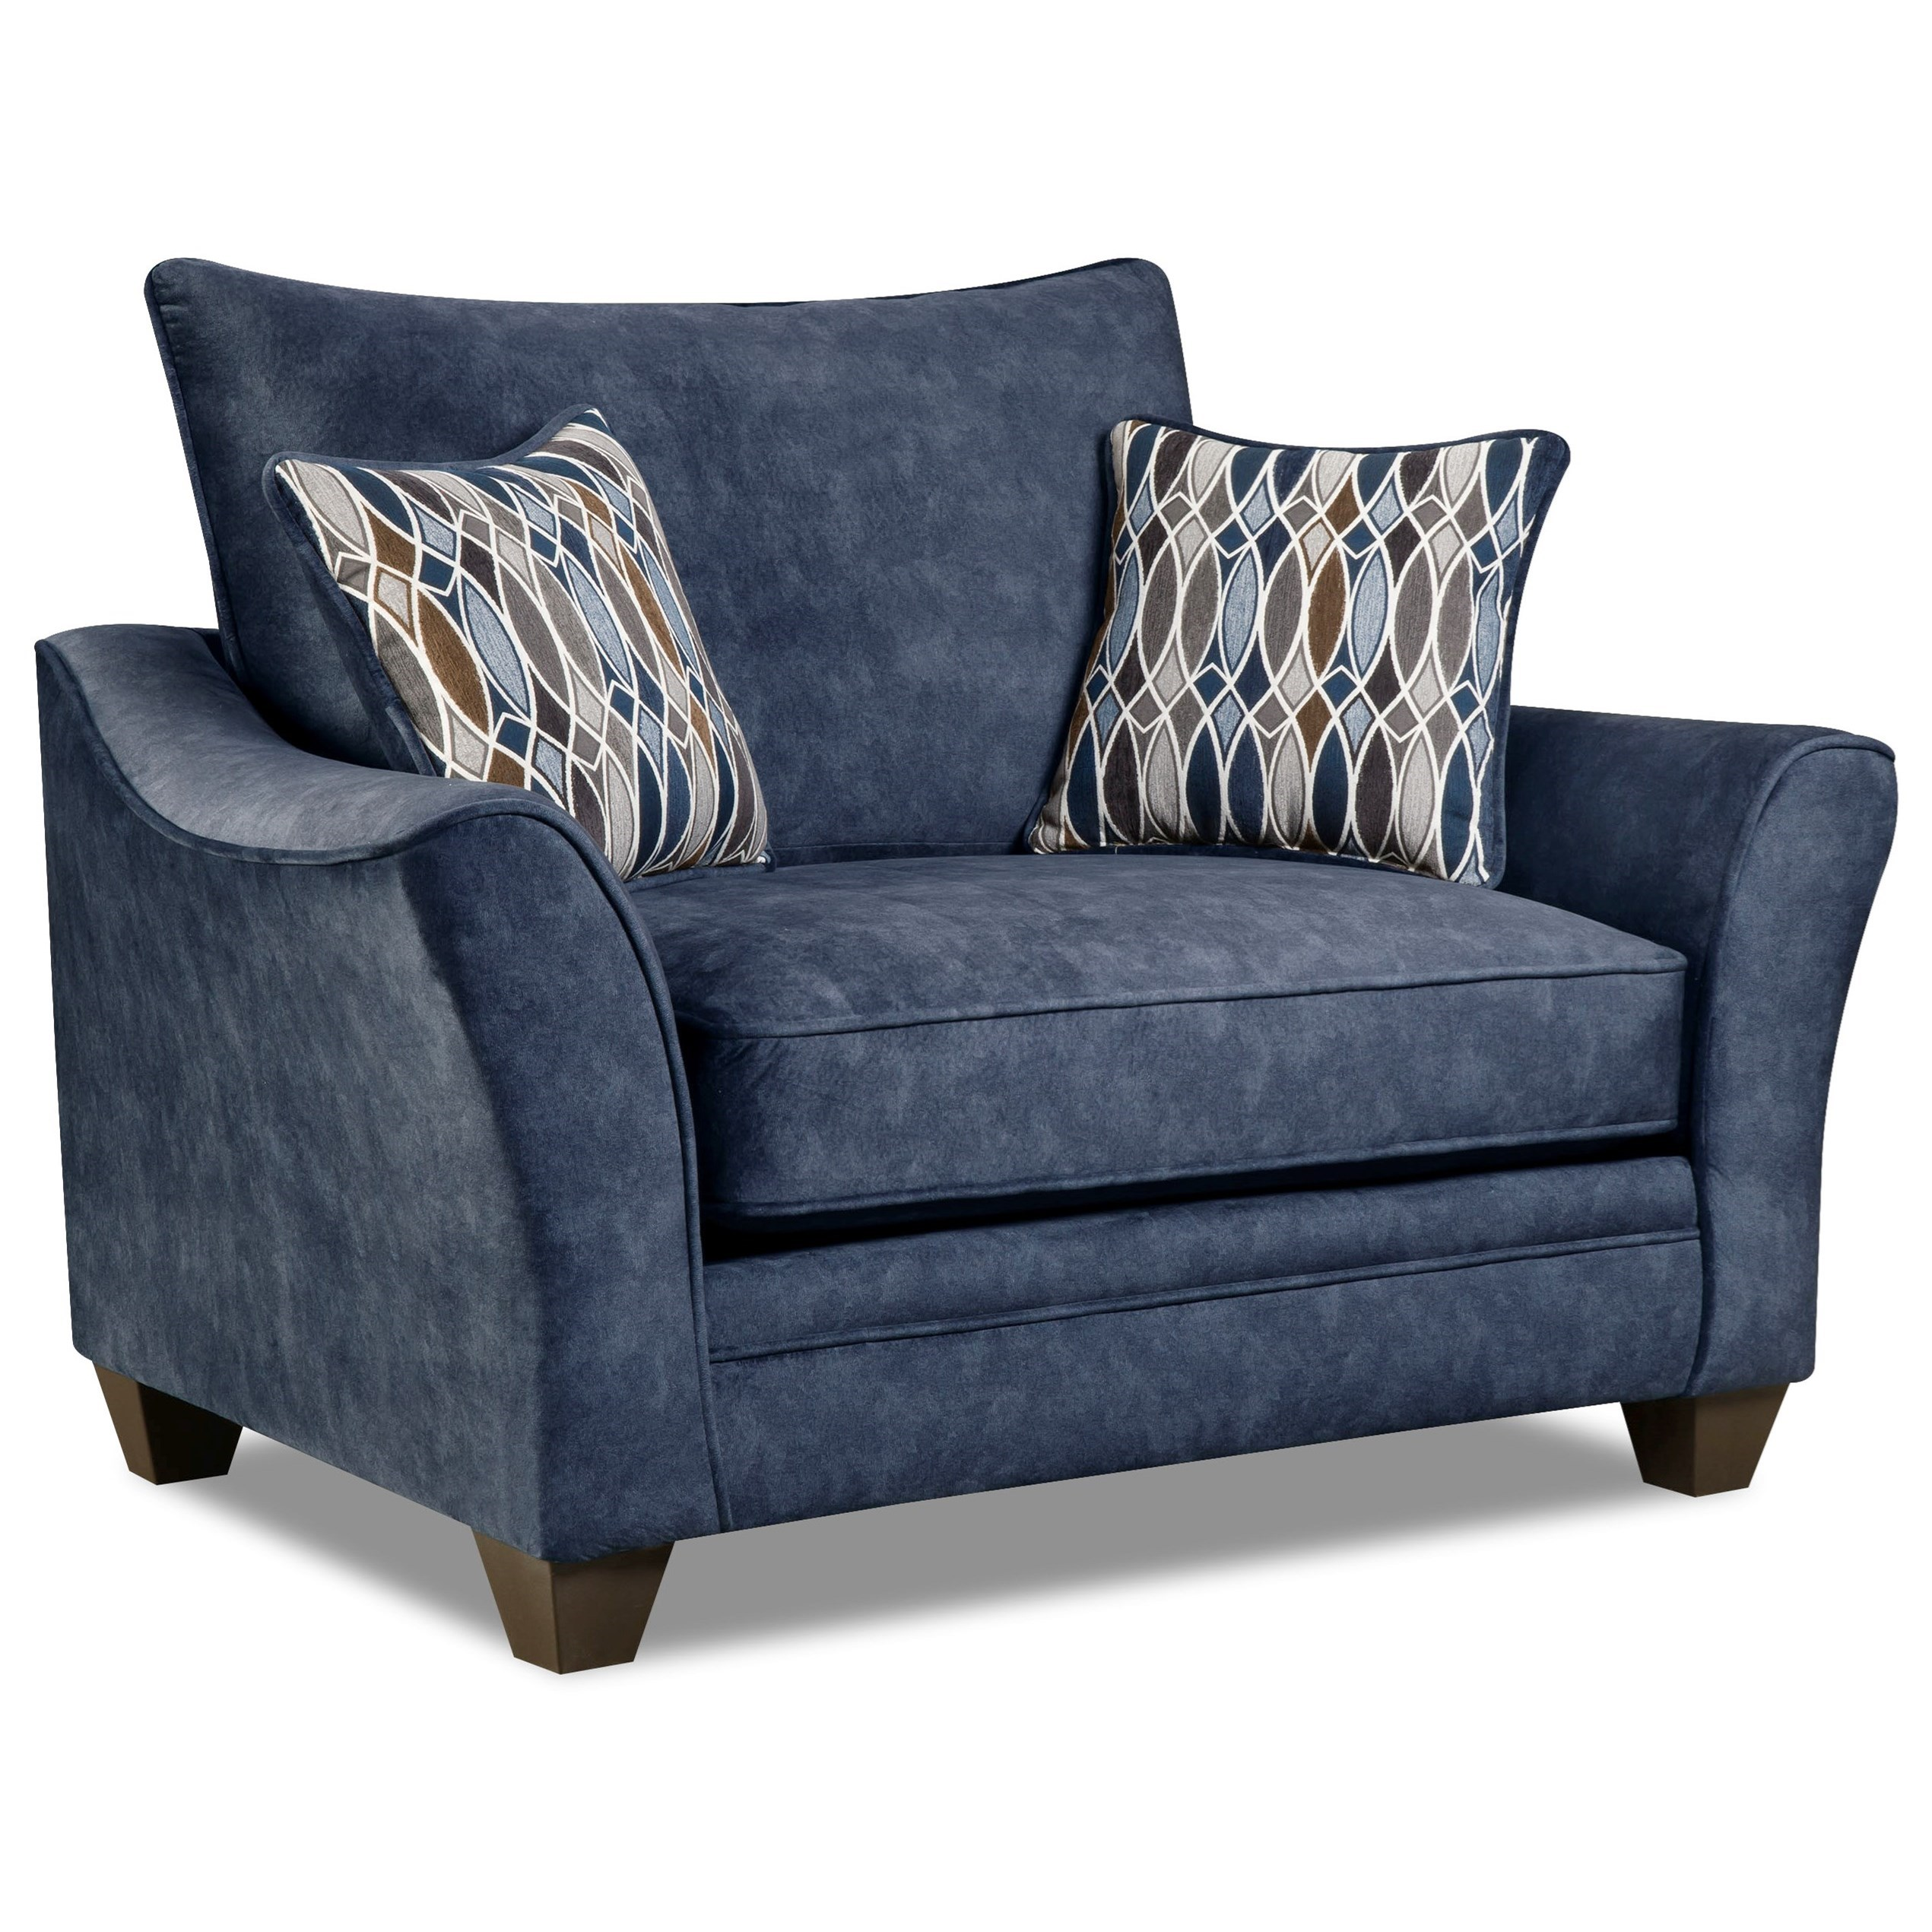 3850 Chair and a Half by Peak Living at Prime Brothers Furniture